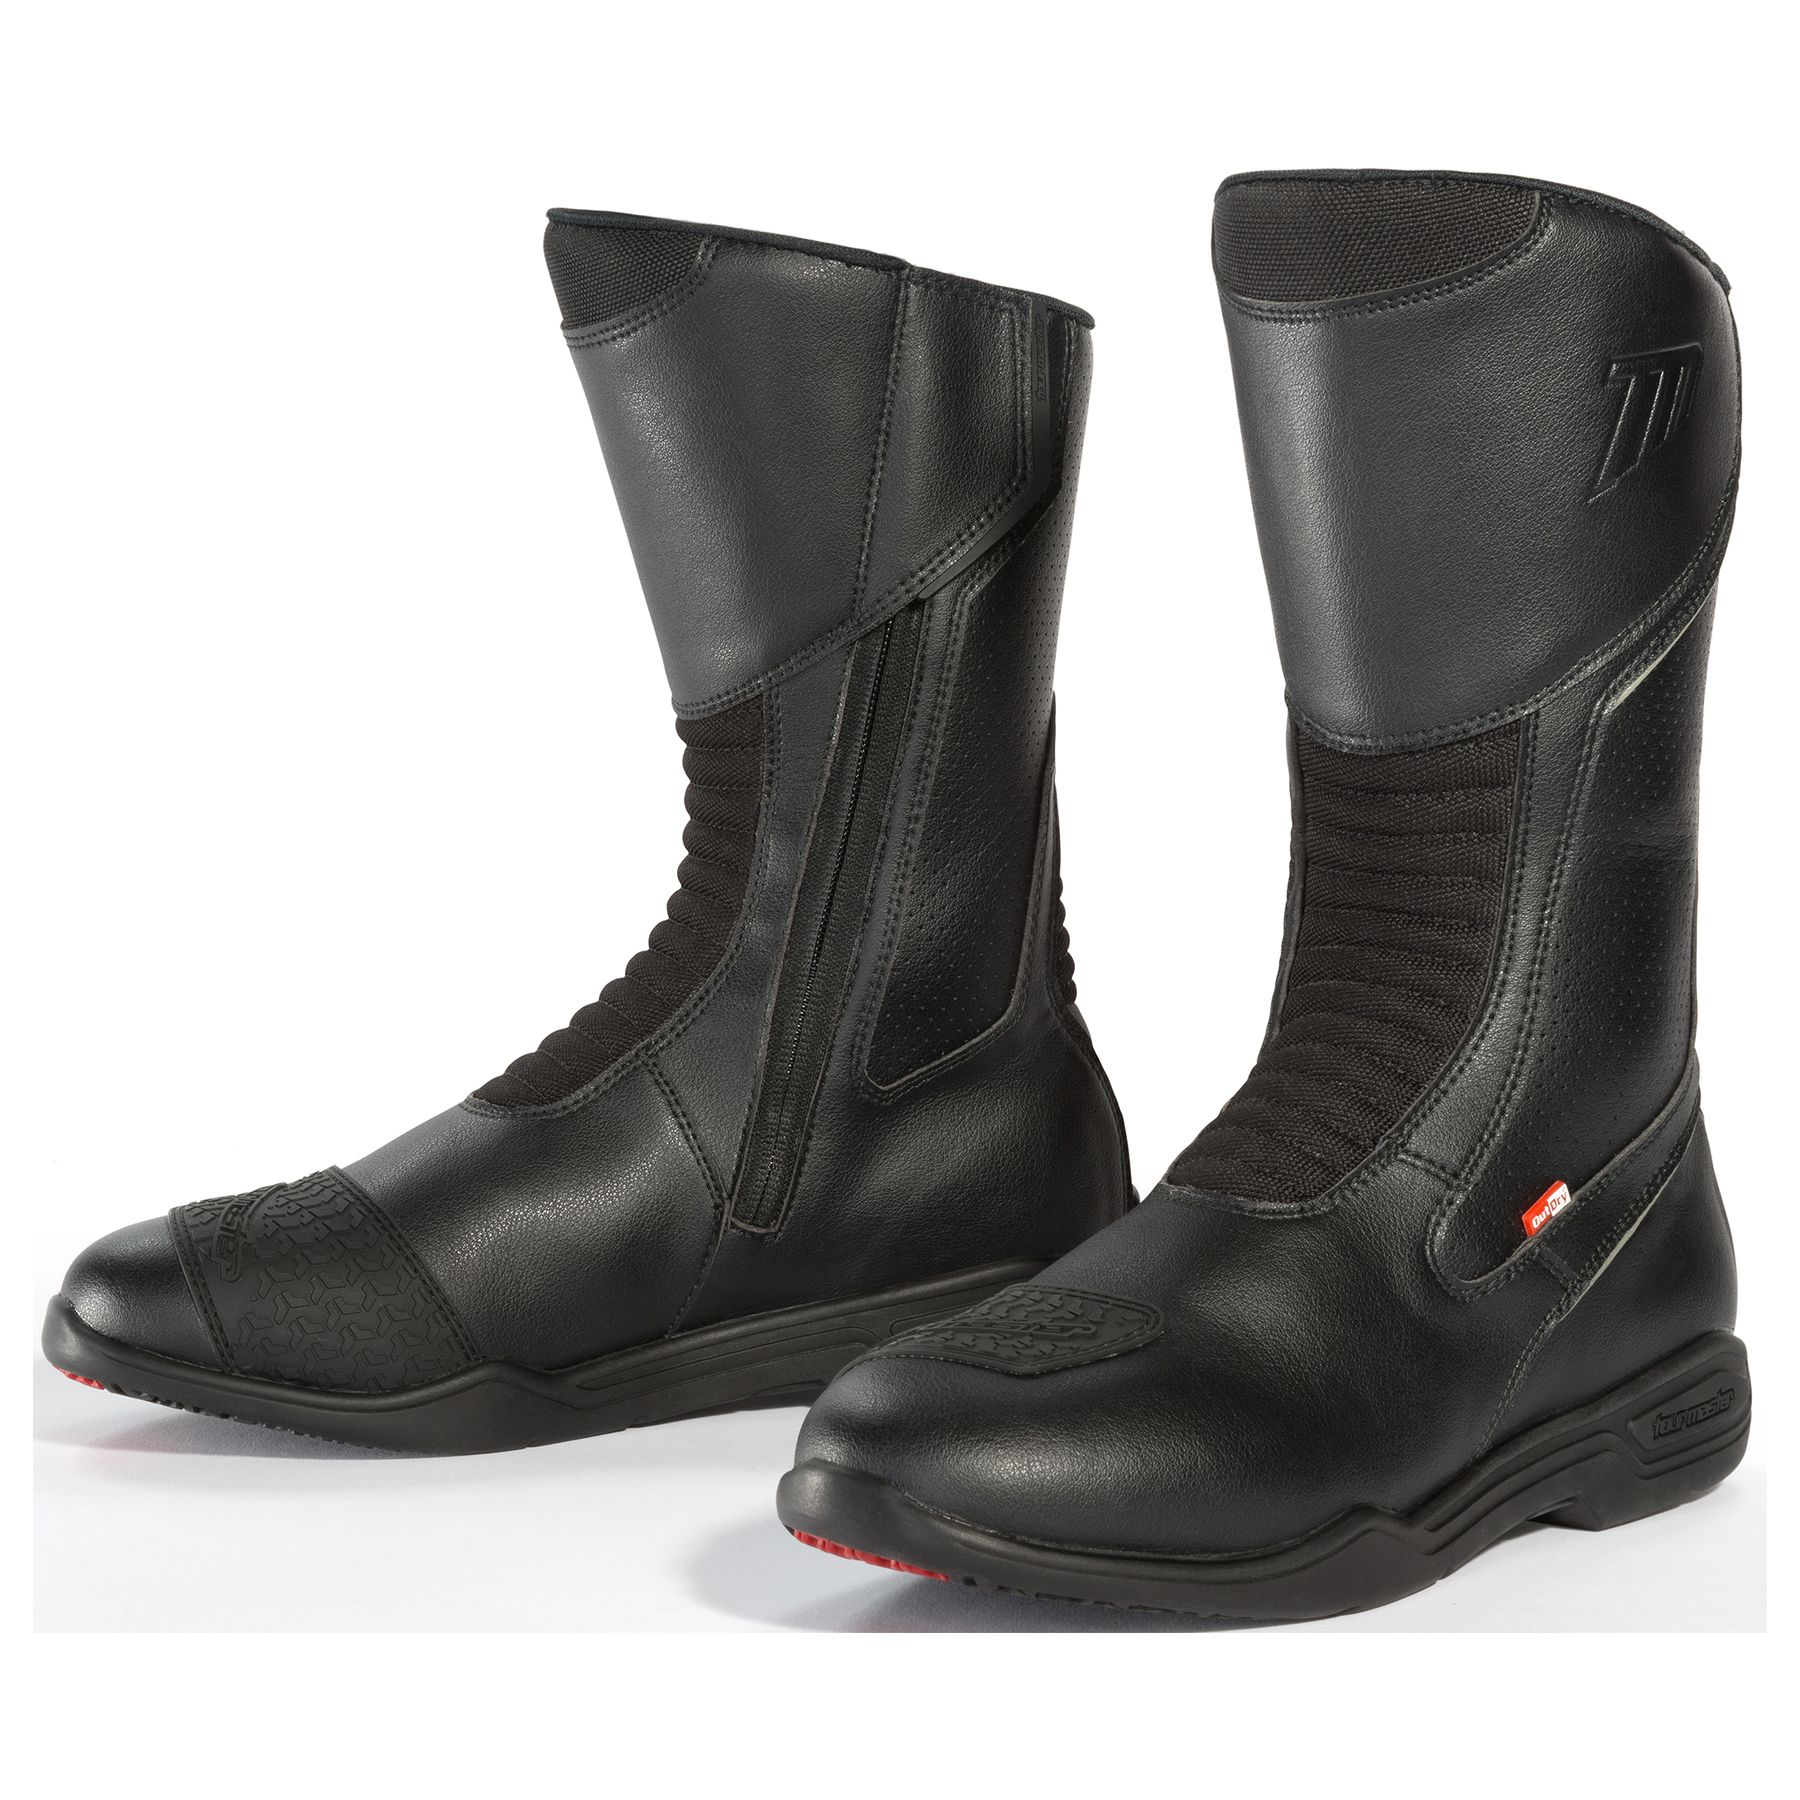 TourMaster Solution 2.0 Cold-Weather WP Road Boots Black, 14W